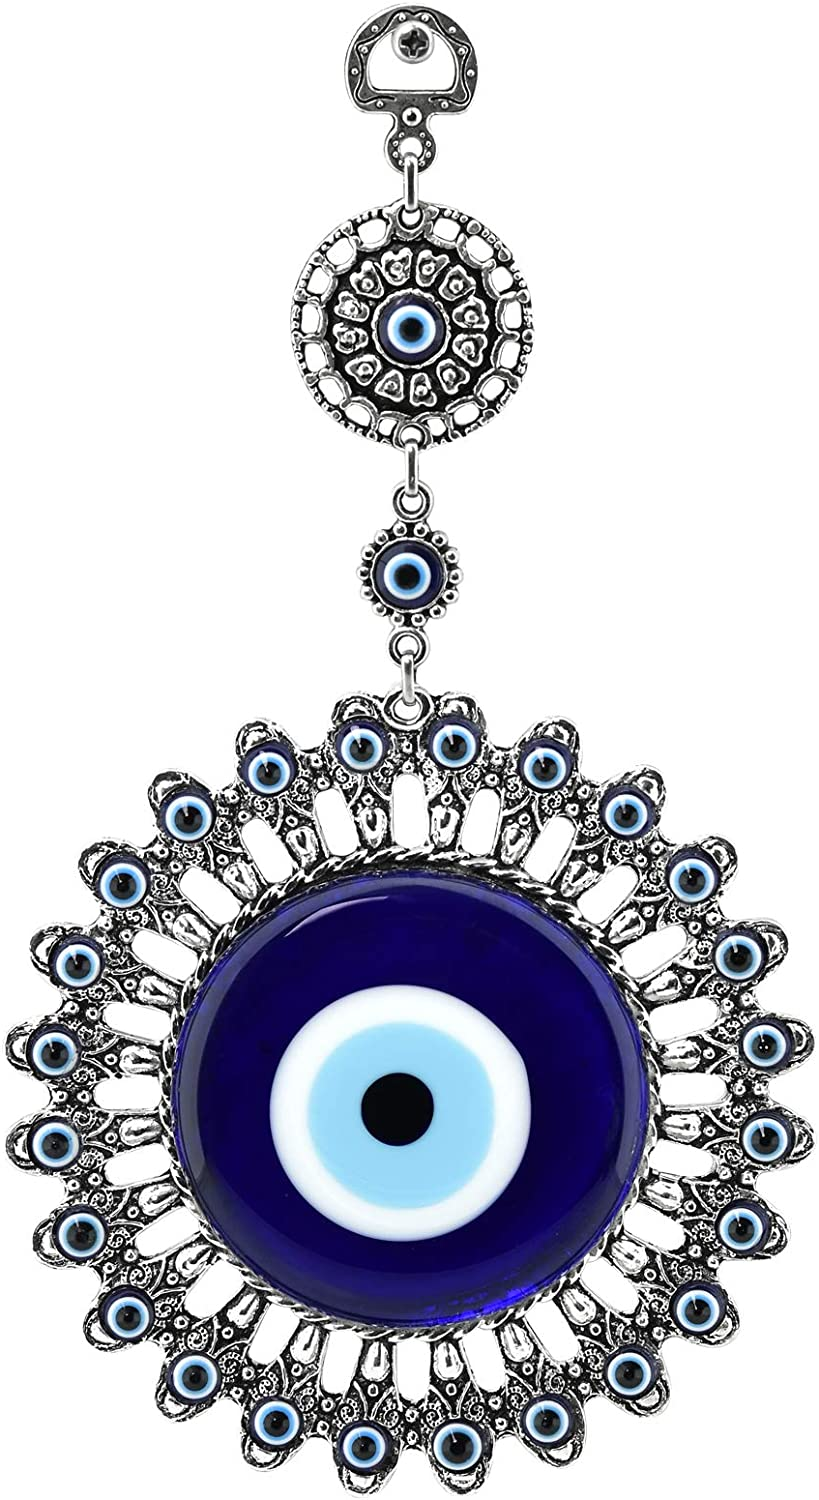 Protection and Good Luck Charm Gift in a Box Turkish Nazar Bead Amulet Erbulus Turkish Large Glass Blue Evil Eye Wall Hanging Ornament with Elephant Metal Home Decor